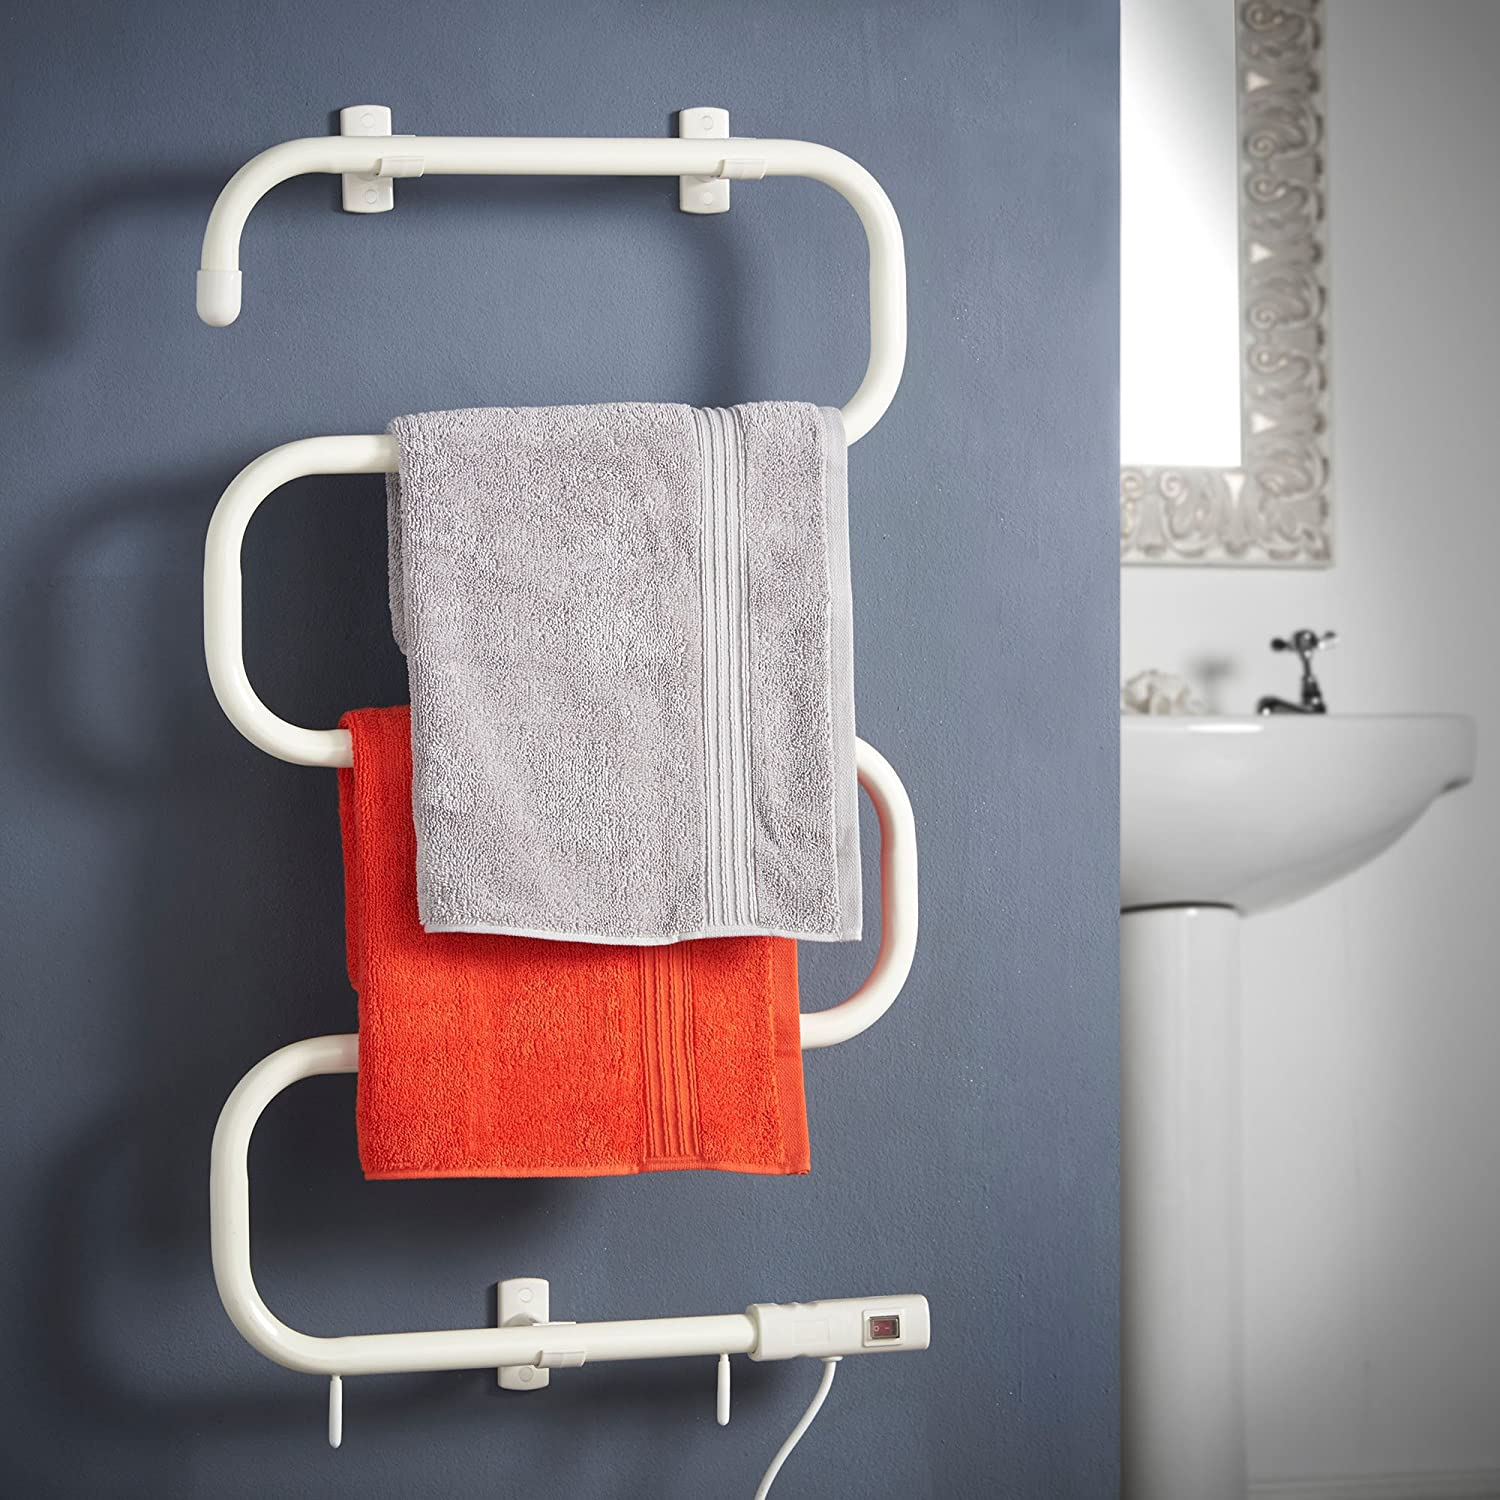 VonHaus Electric Heated Towel Rail